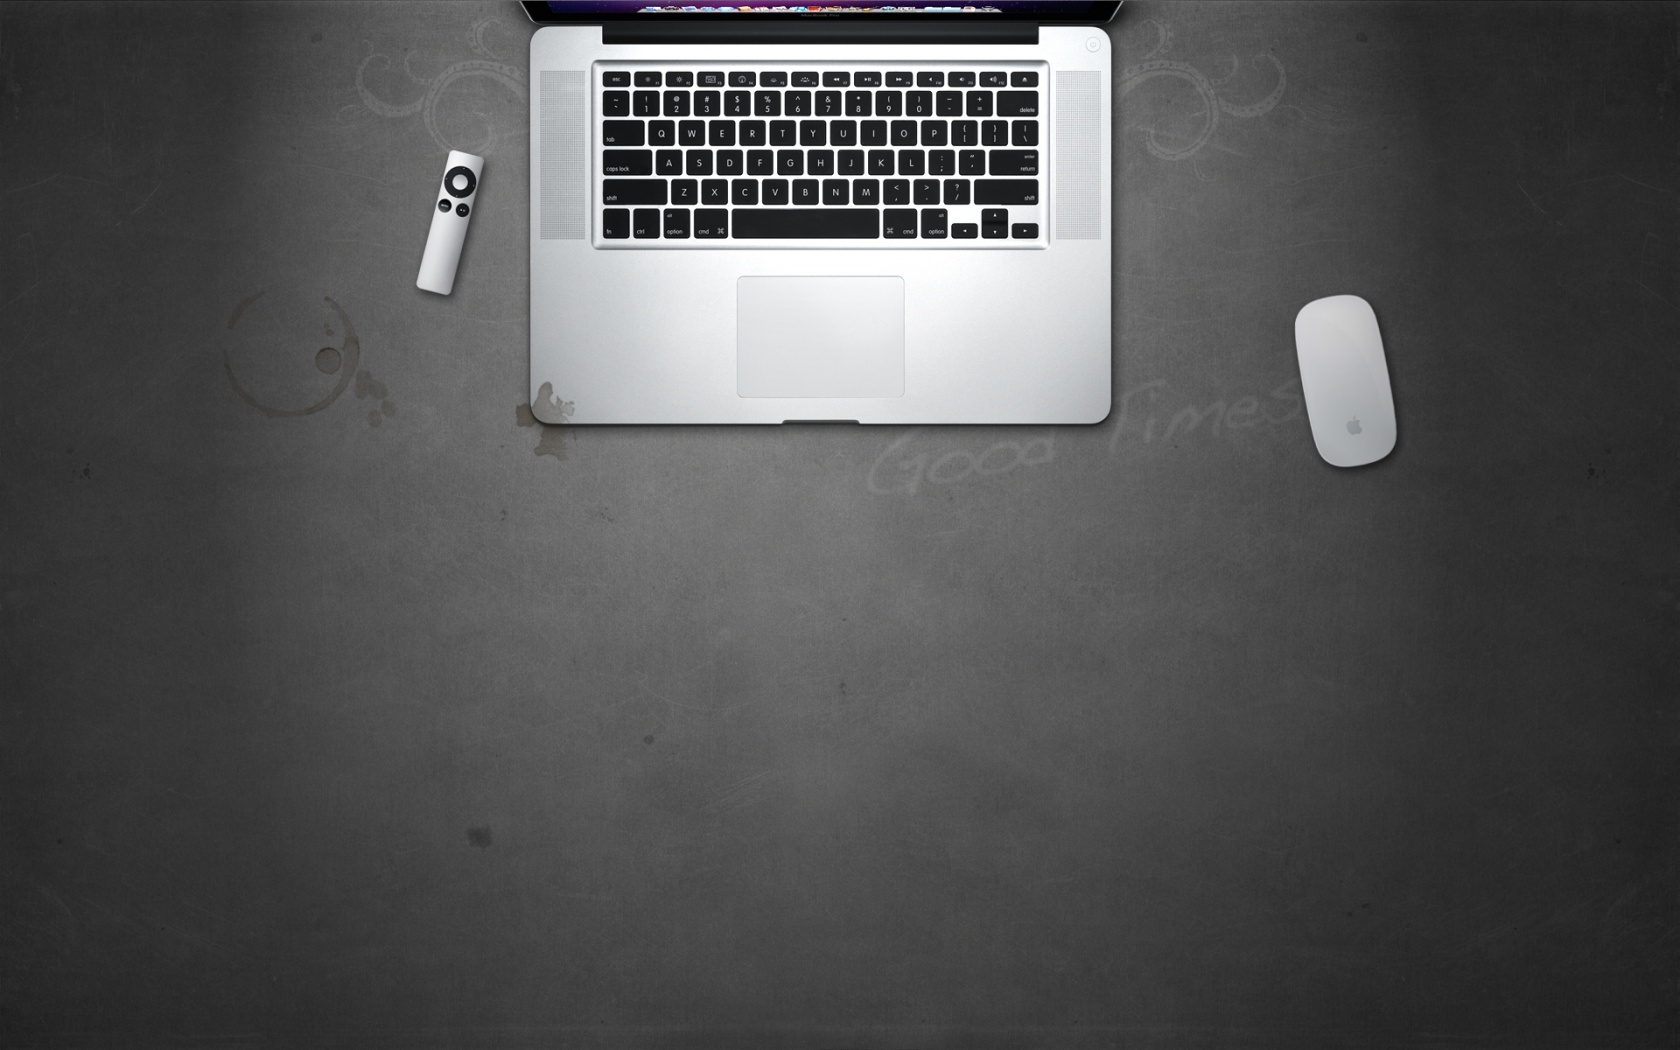 Desktop Wallpaper MacBook Pro - WallpaperSafari